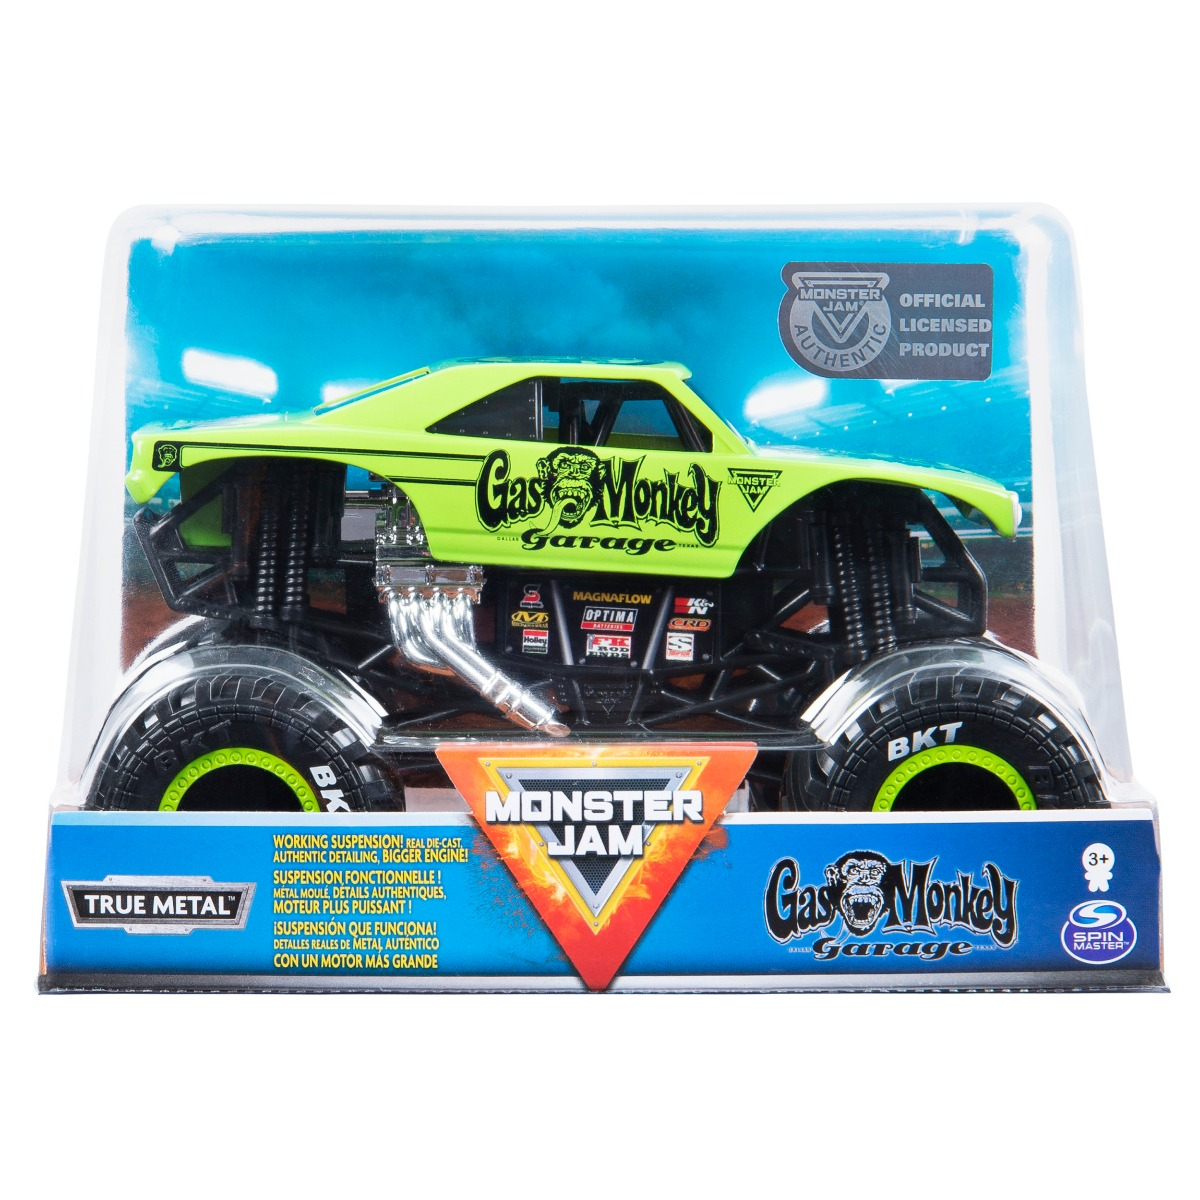 Masinuta Monster Jam, Gas Monkey, Scara 1:24, 20120675